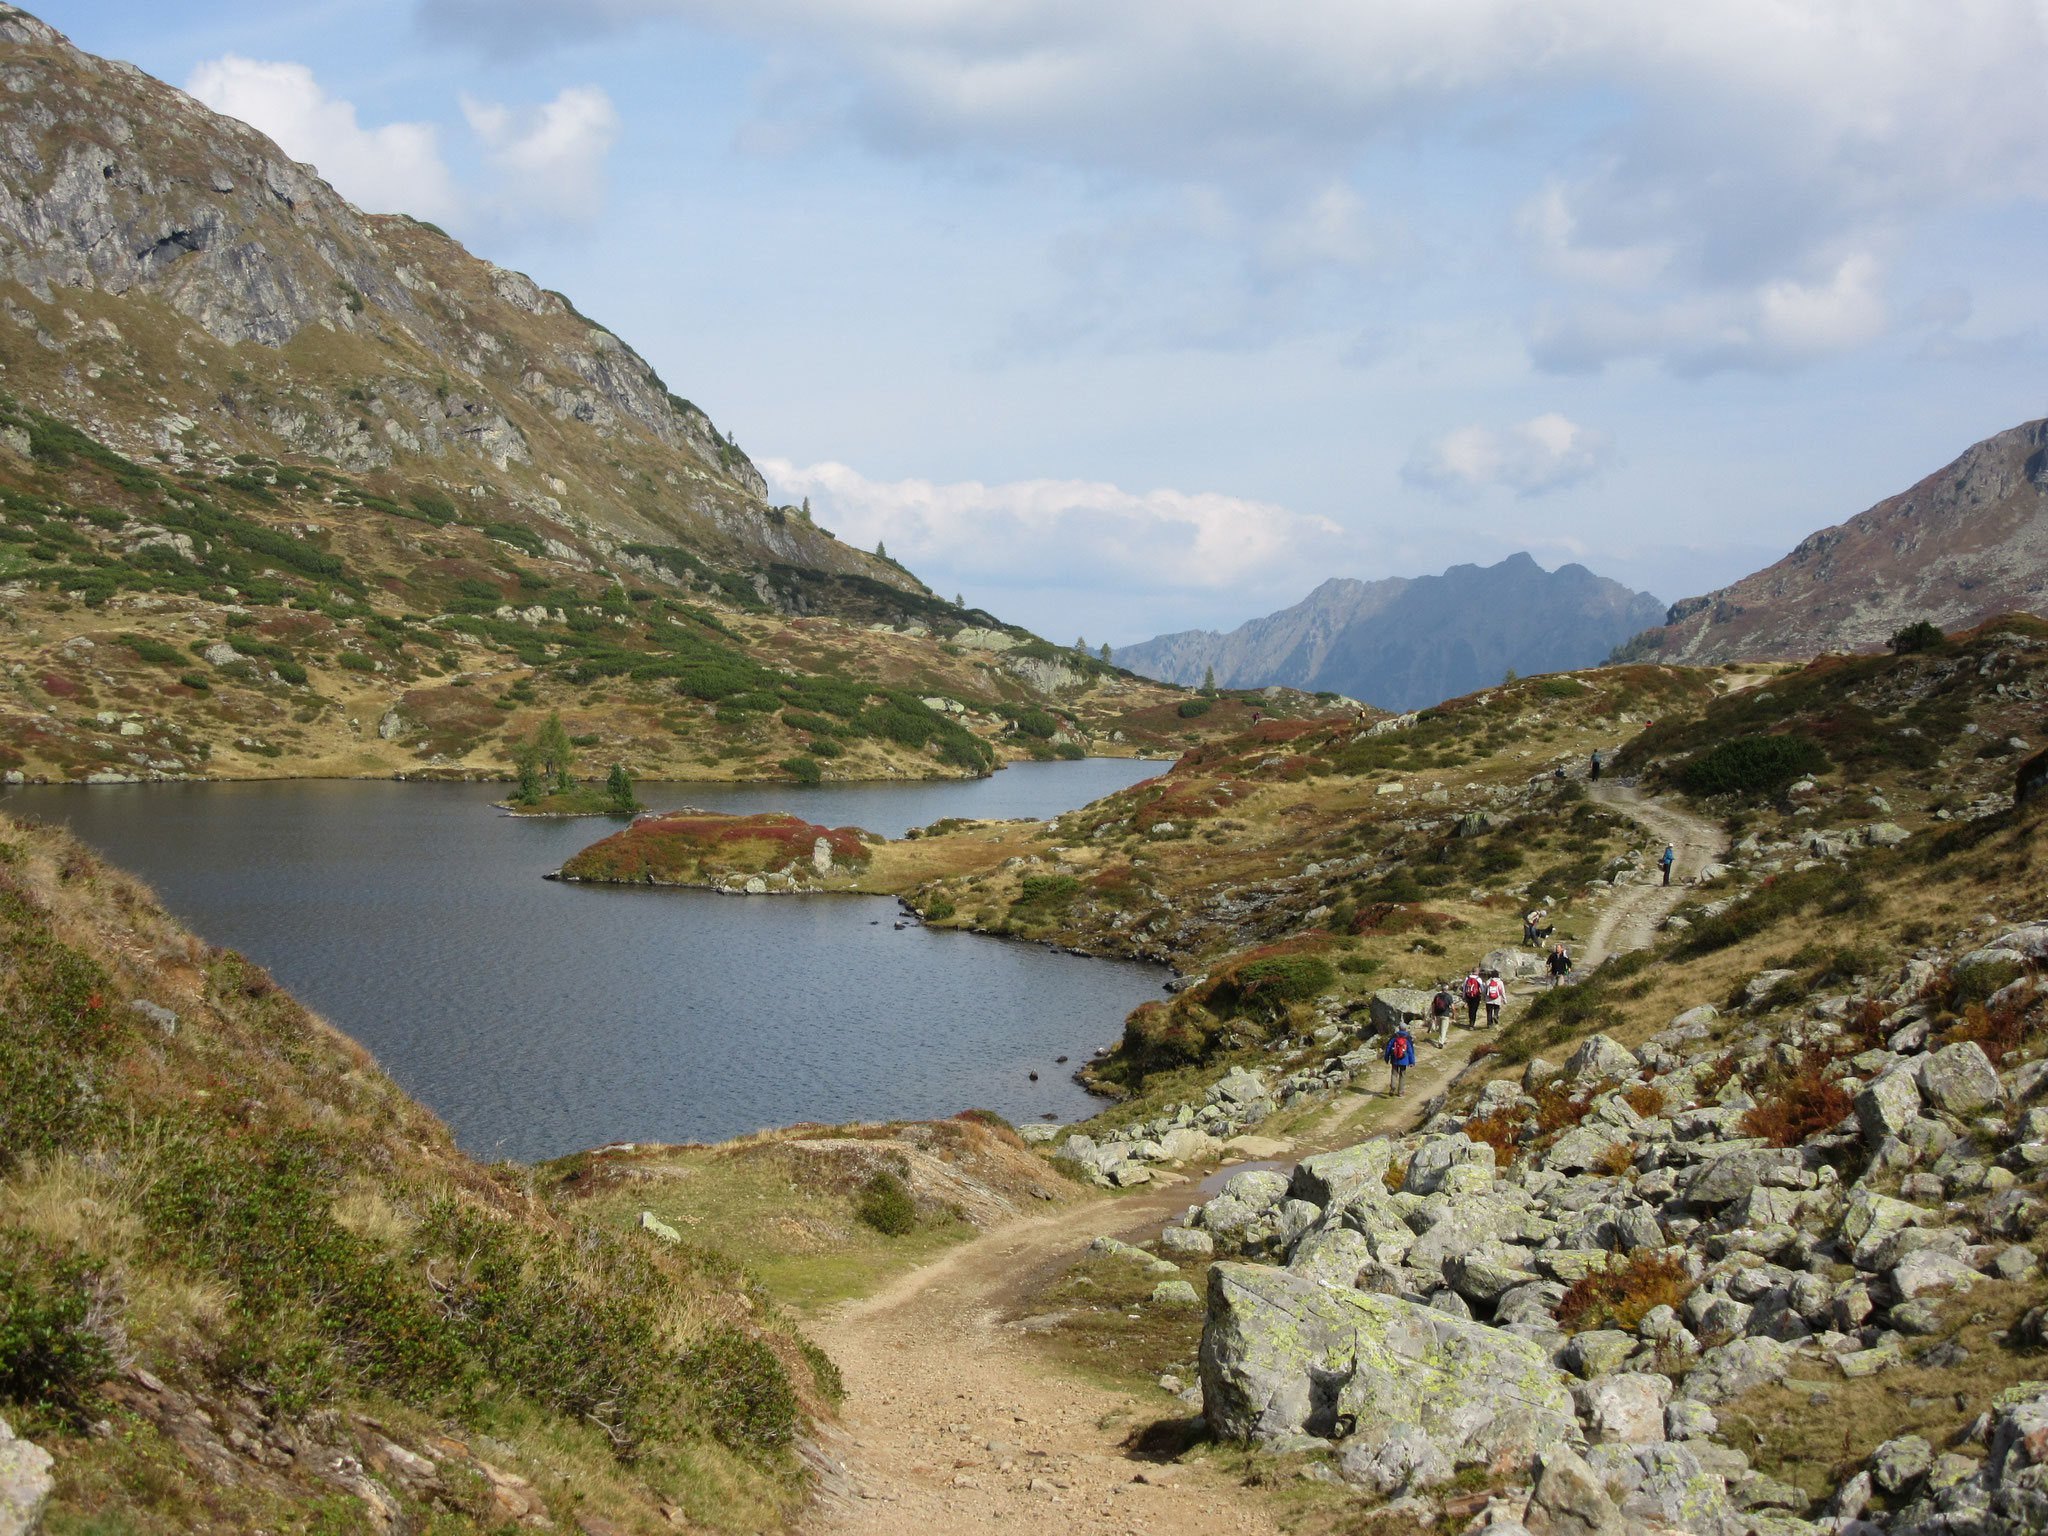 Giglachsee in the Schladminger Tauern